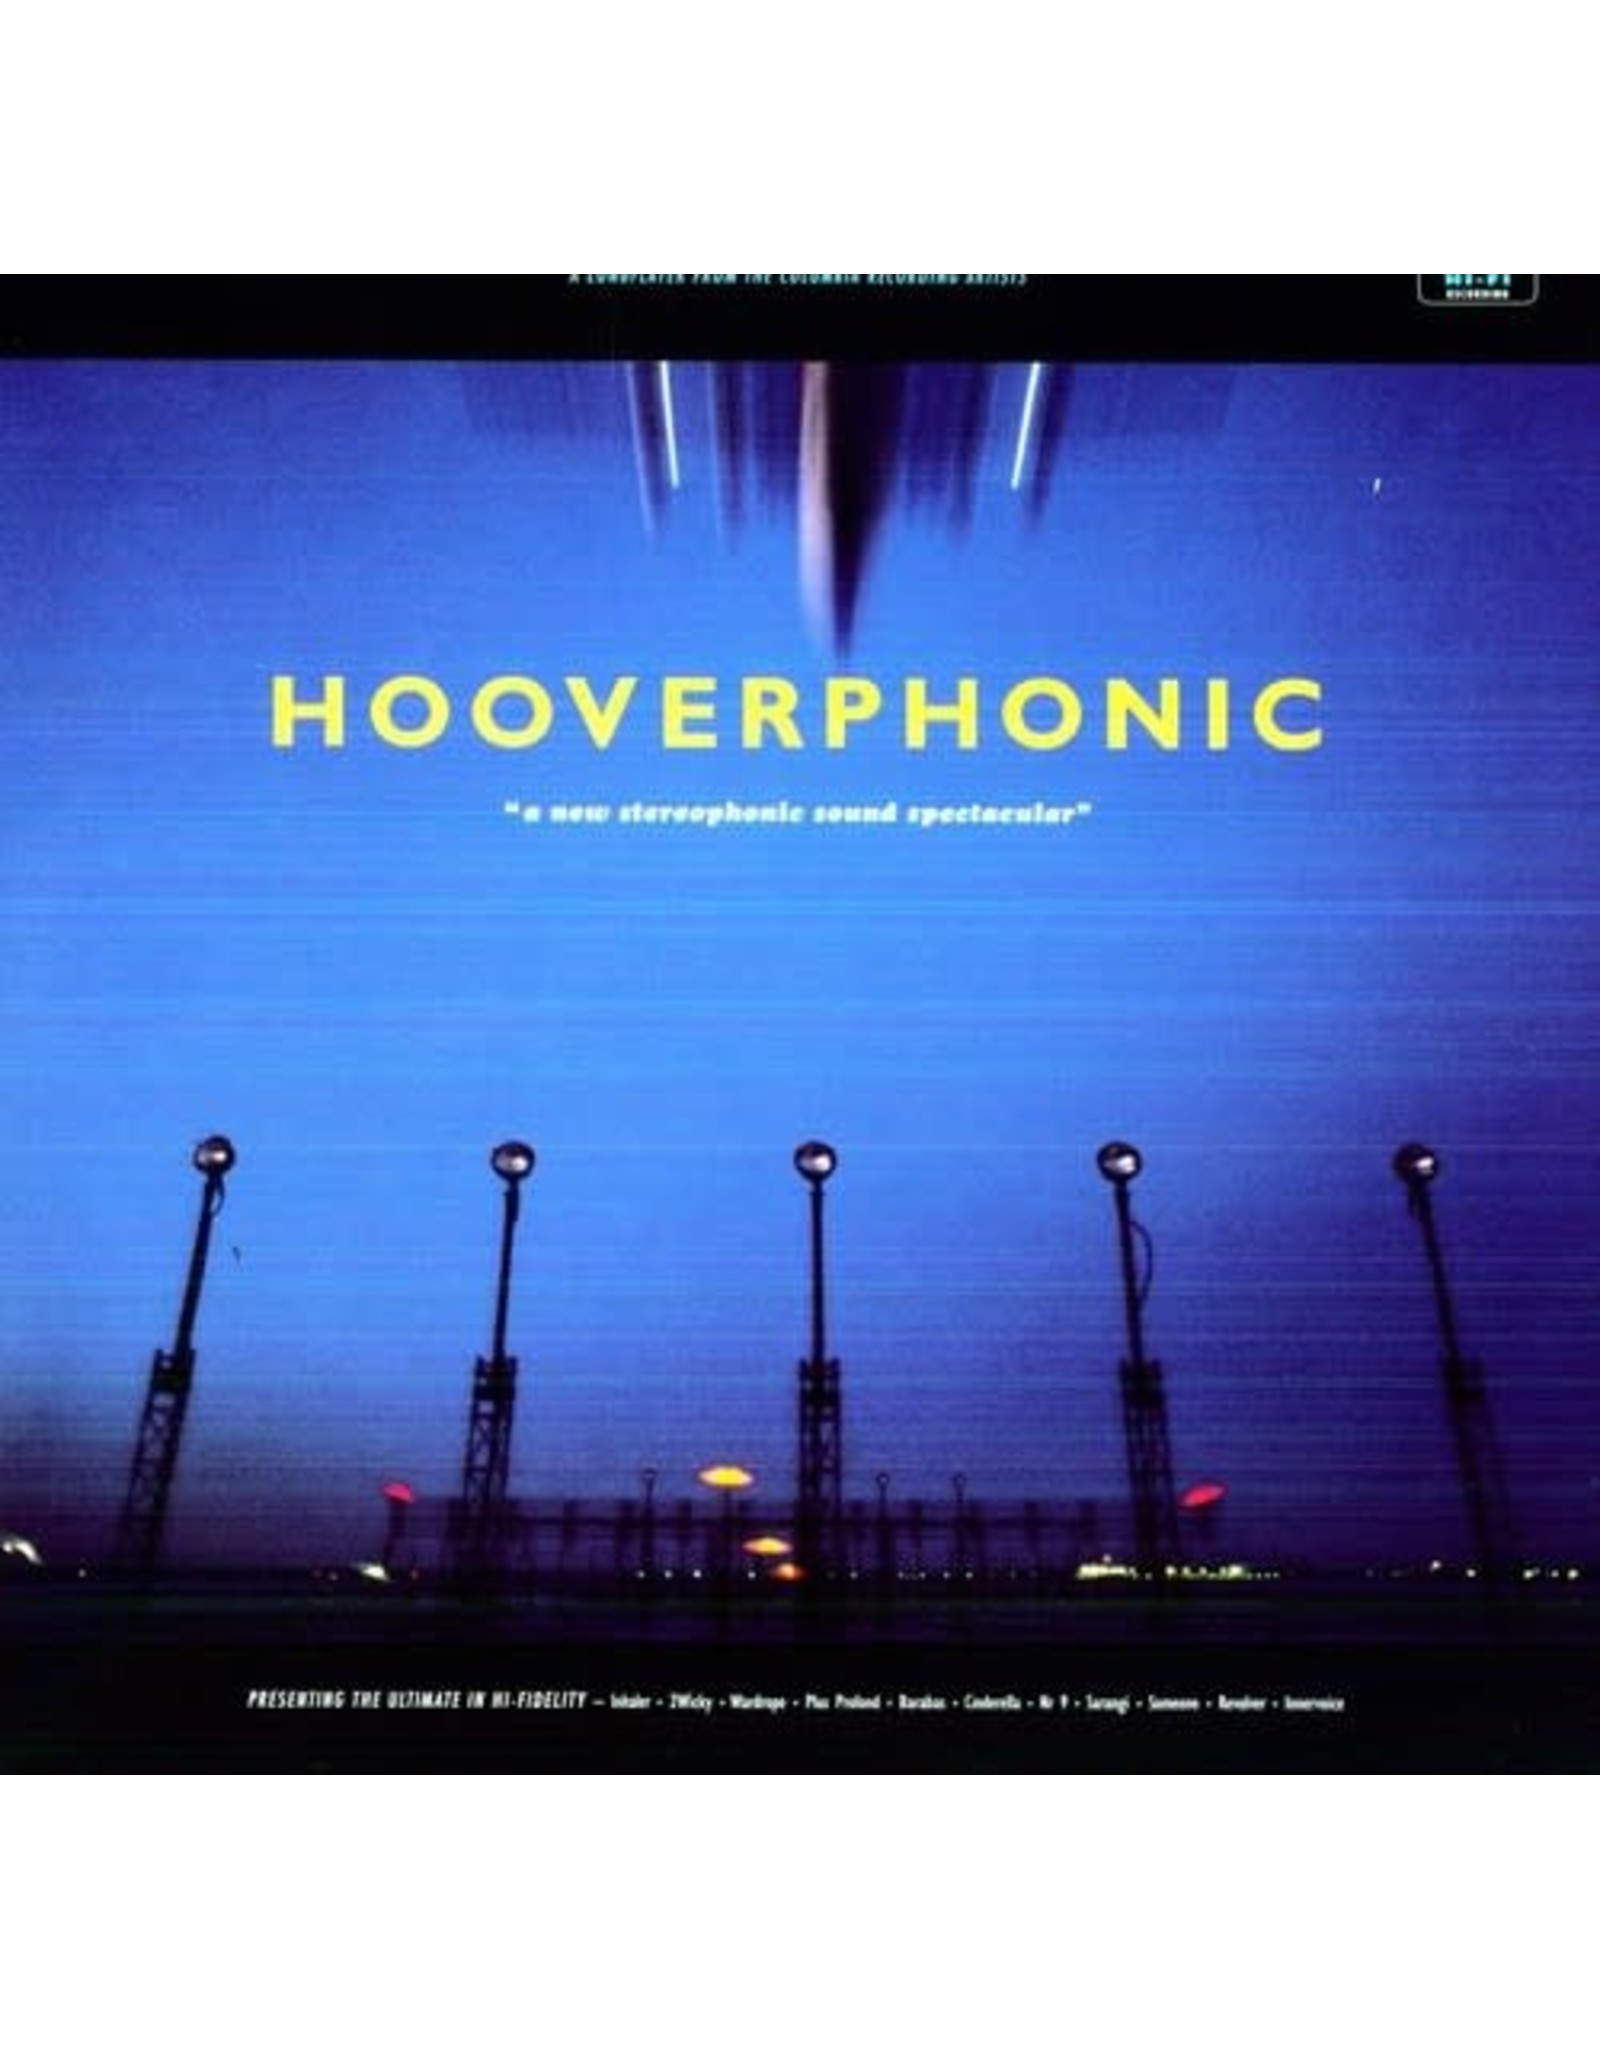 New Vinyl Hooverphonic - A New Stereophonic Sound Spectacular (Holland Import, Colored) LP